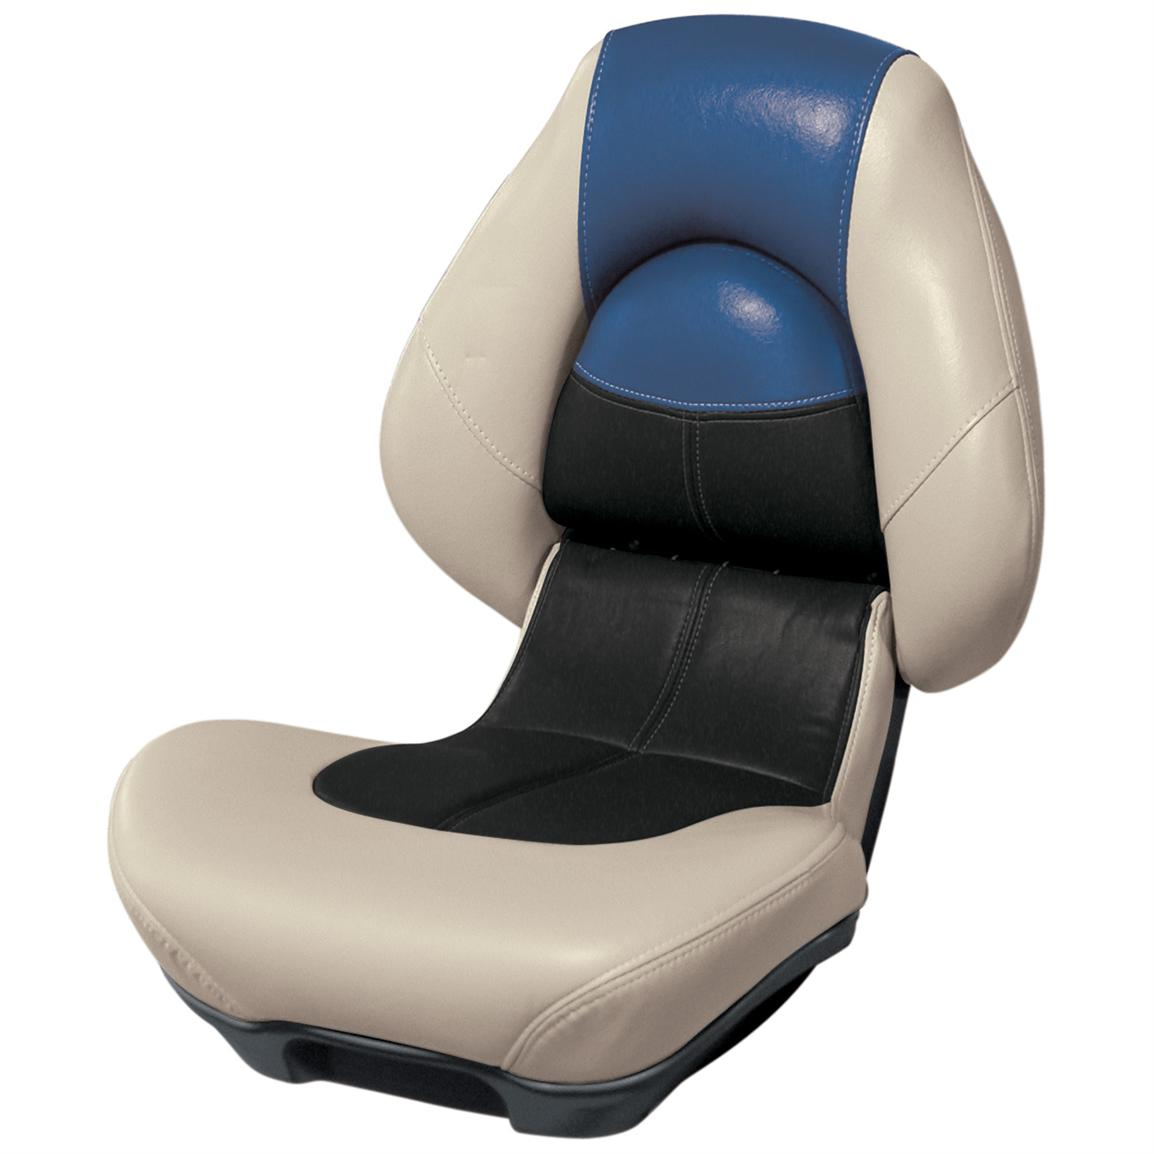 Wise® Blast-Off™ Series Centric 2 Folding Boat Seat, Mushroom / Black / Blue